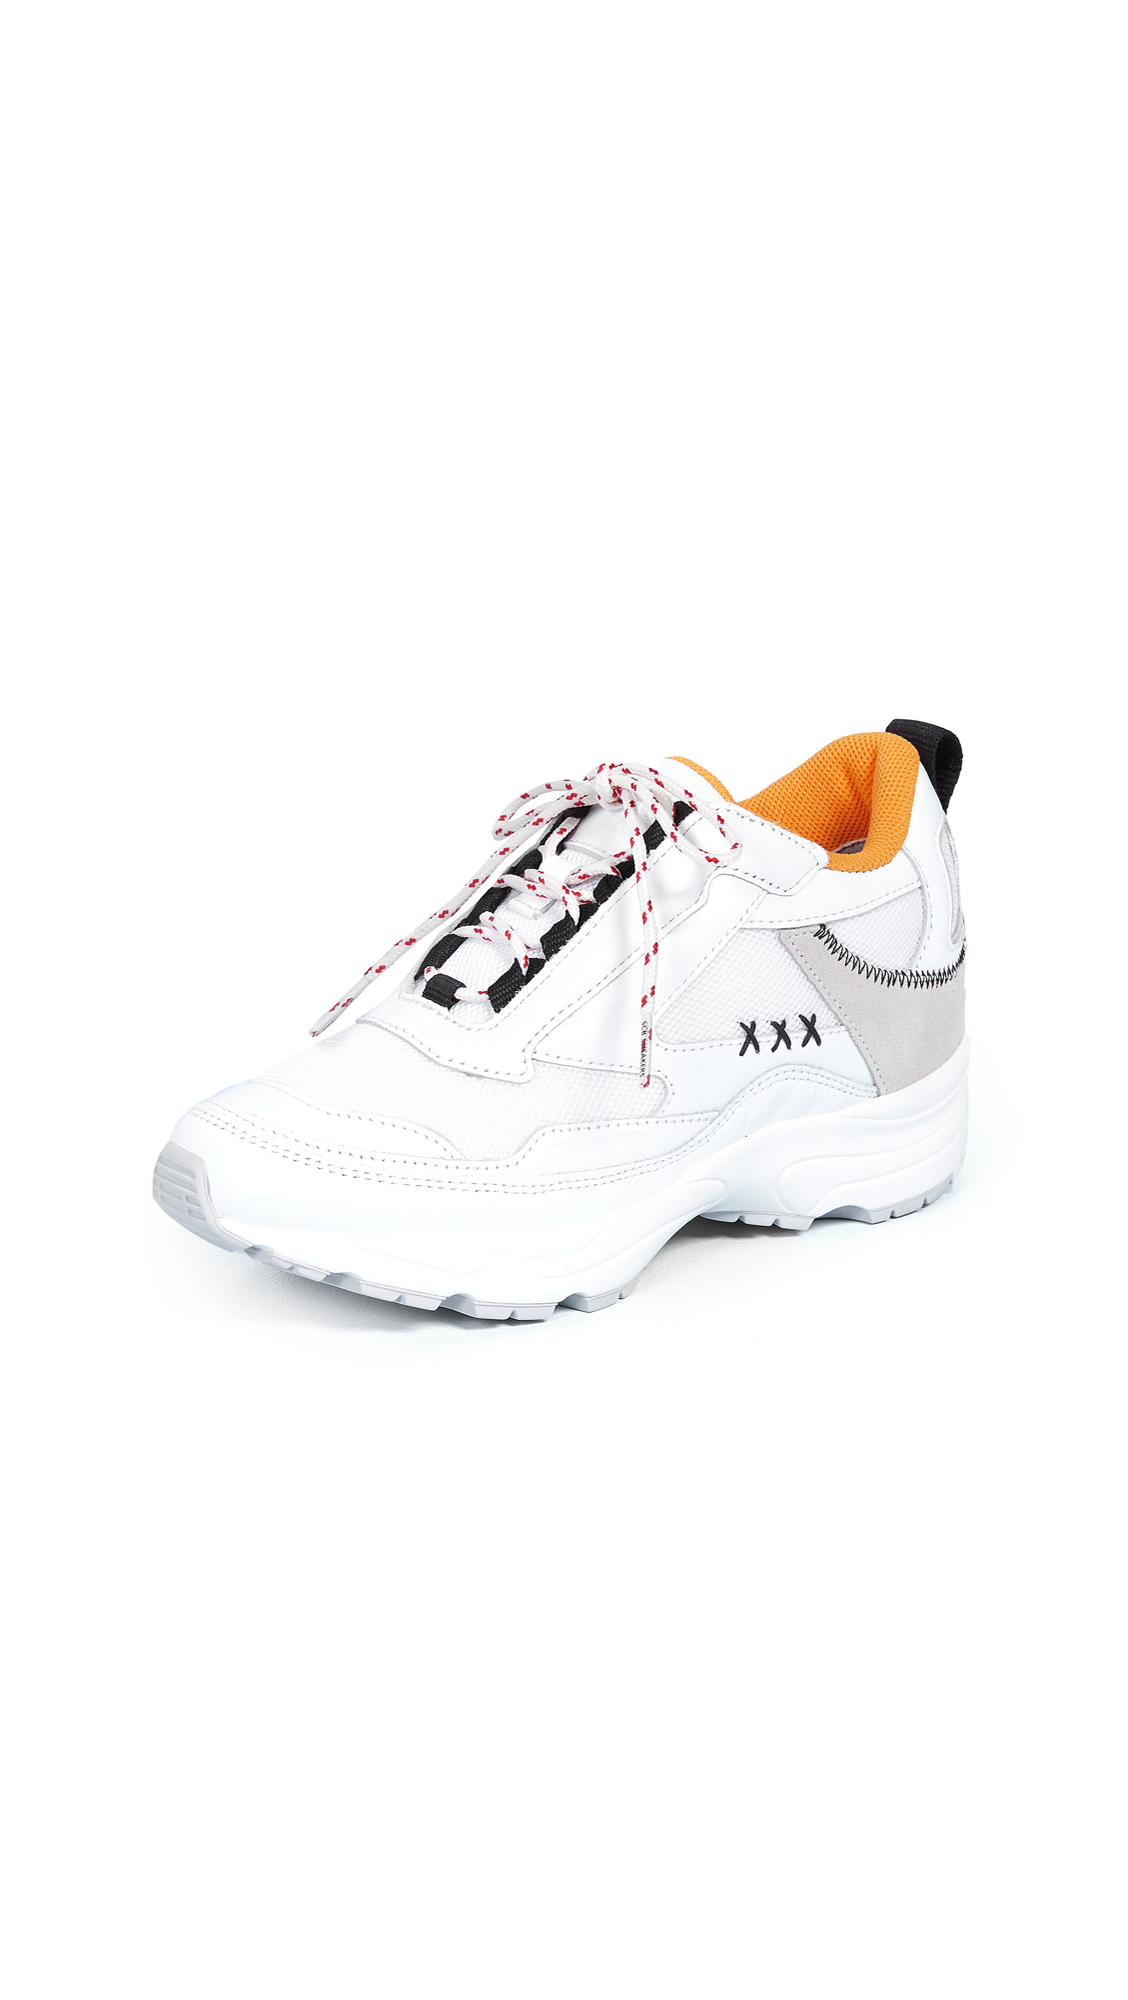 Suecomma Bonnie Colorblock Sneakers In White/White